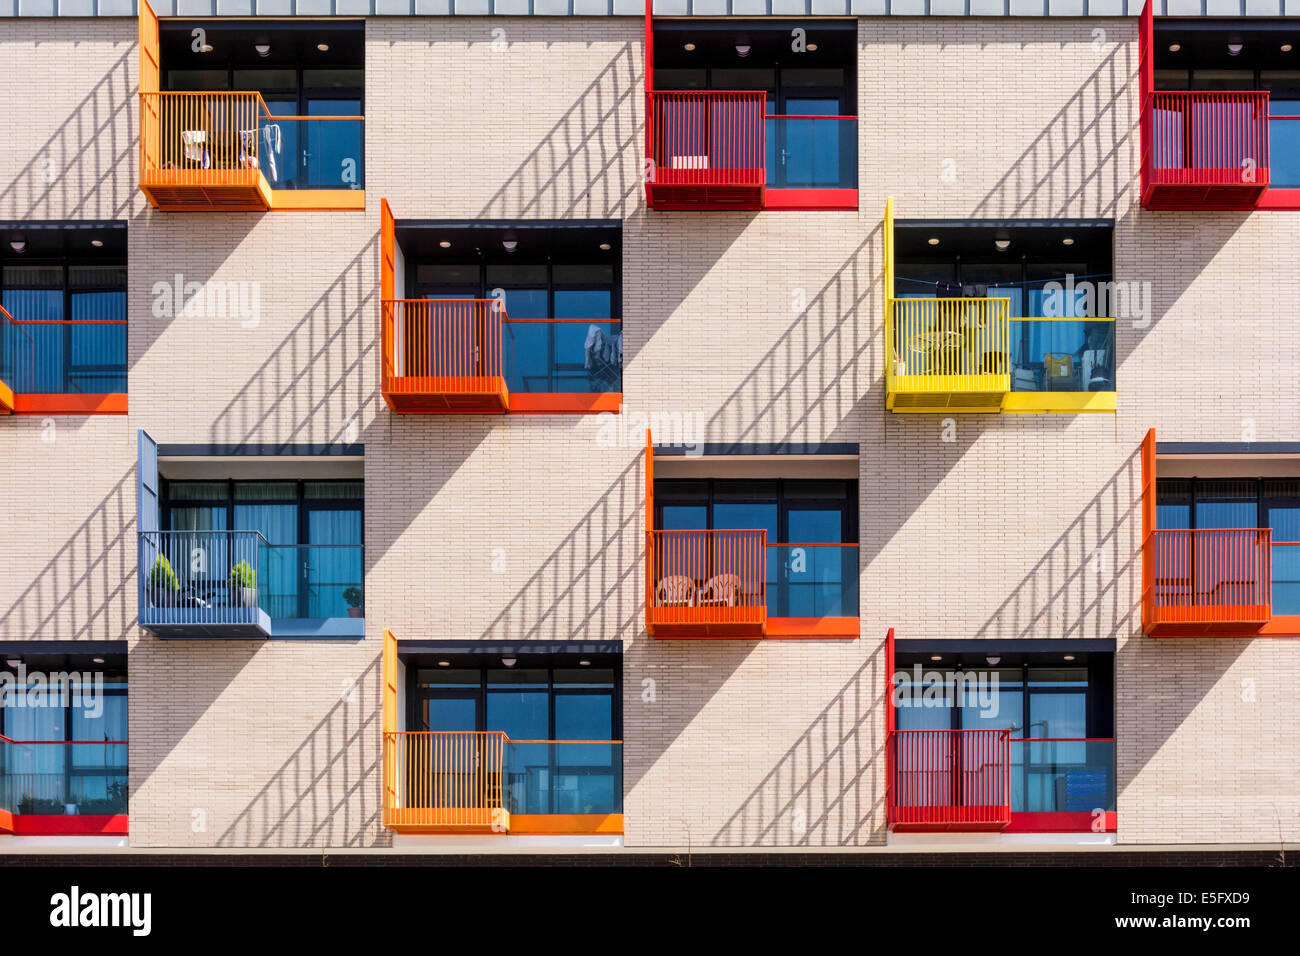 Colurful Windows And Small Balconies Of Modern Apartment Building In  Croydon, Greater London, UK